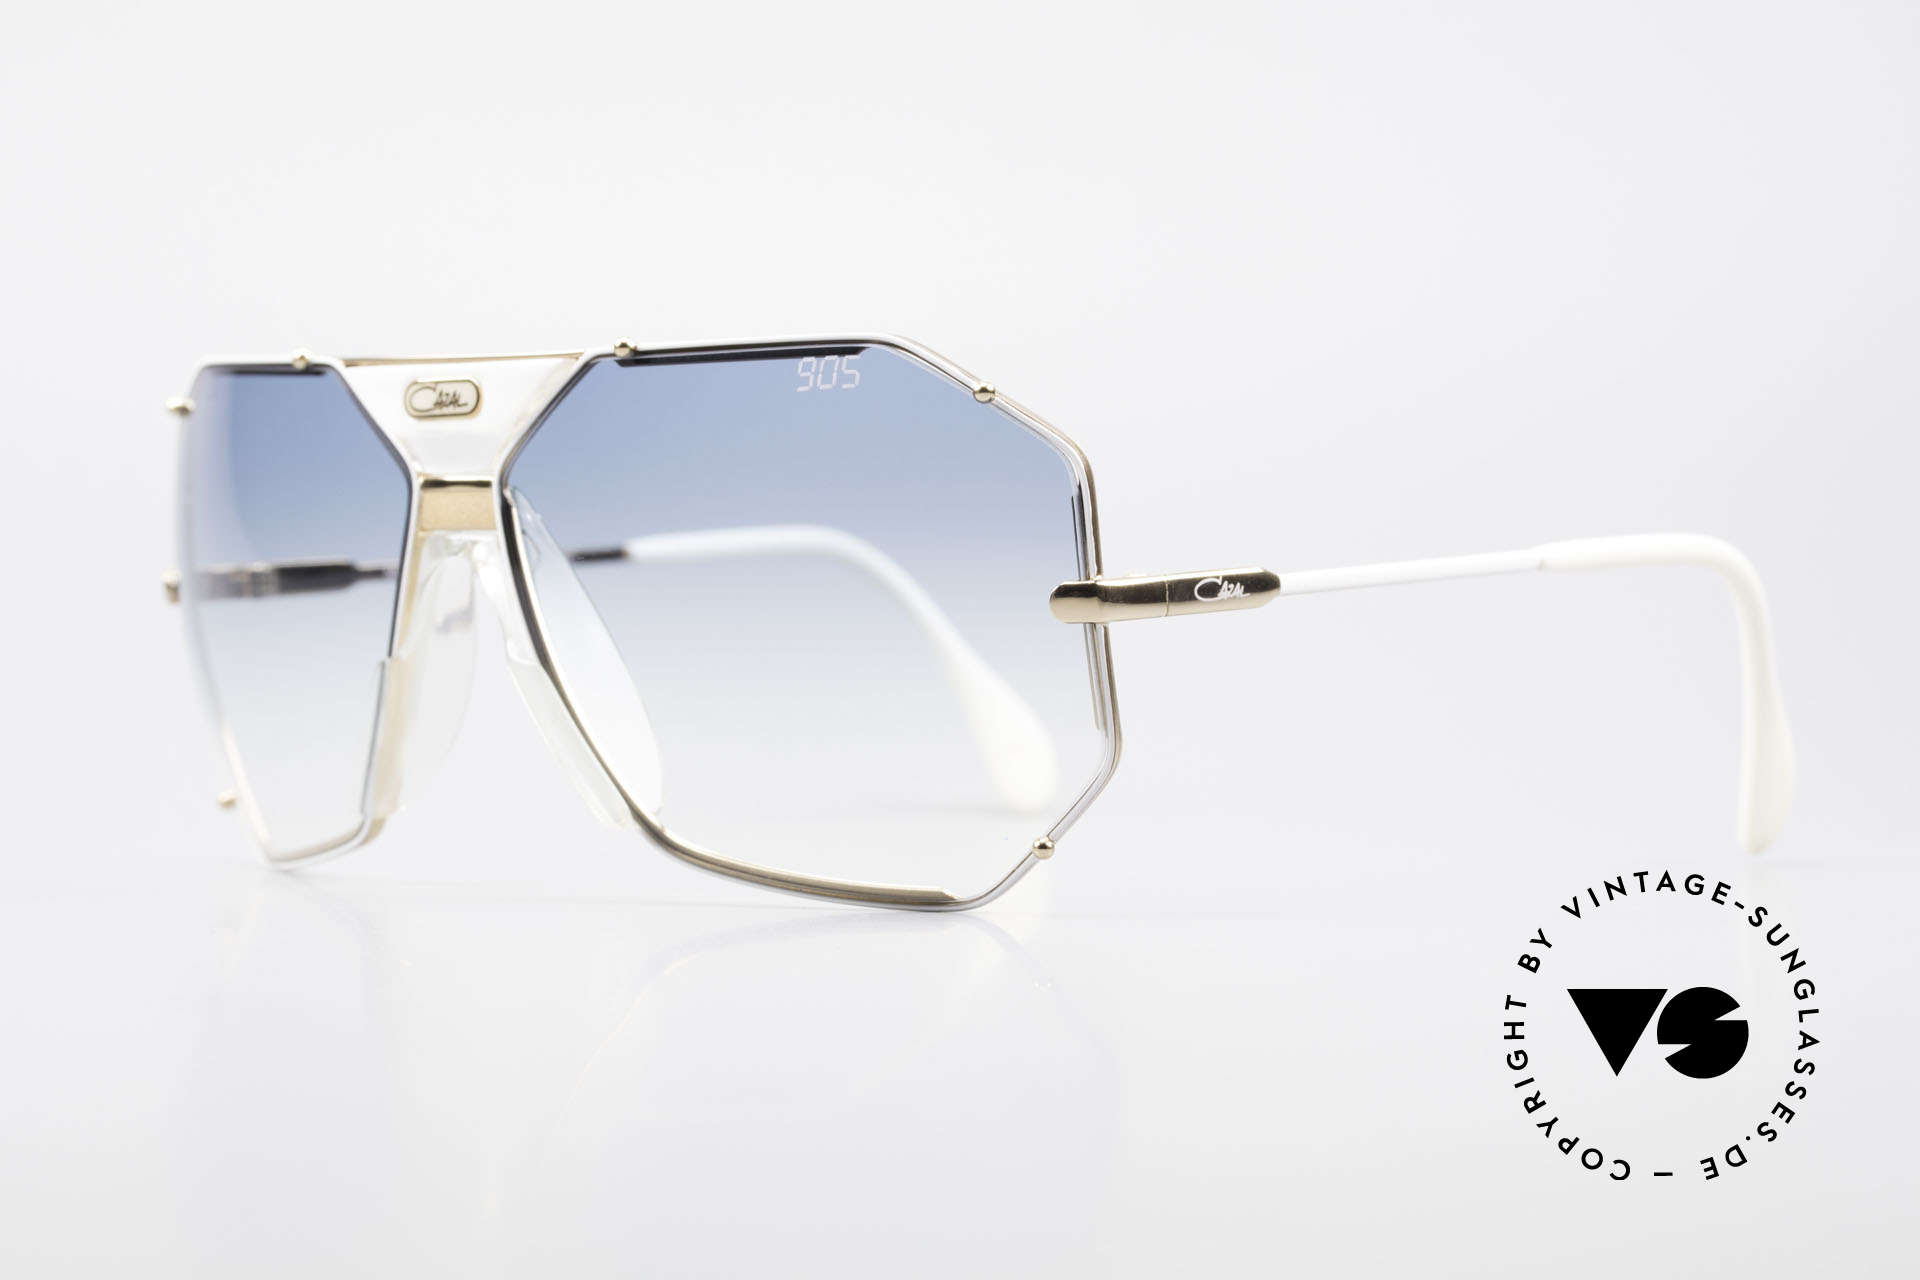 Cazal 905 Gwen Stefani Vintage Shades, comes with original Cazal case and extra lenses, Made for Men and Women